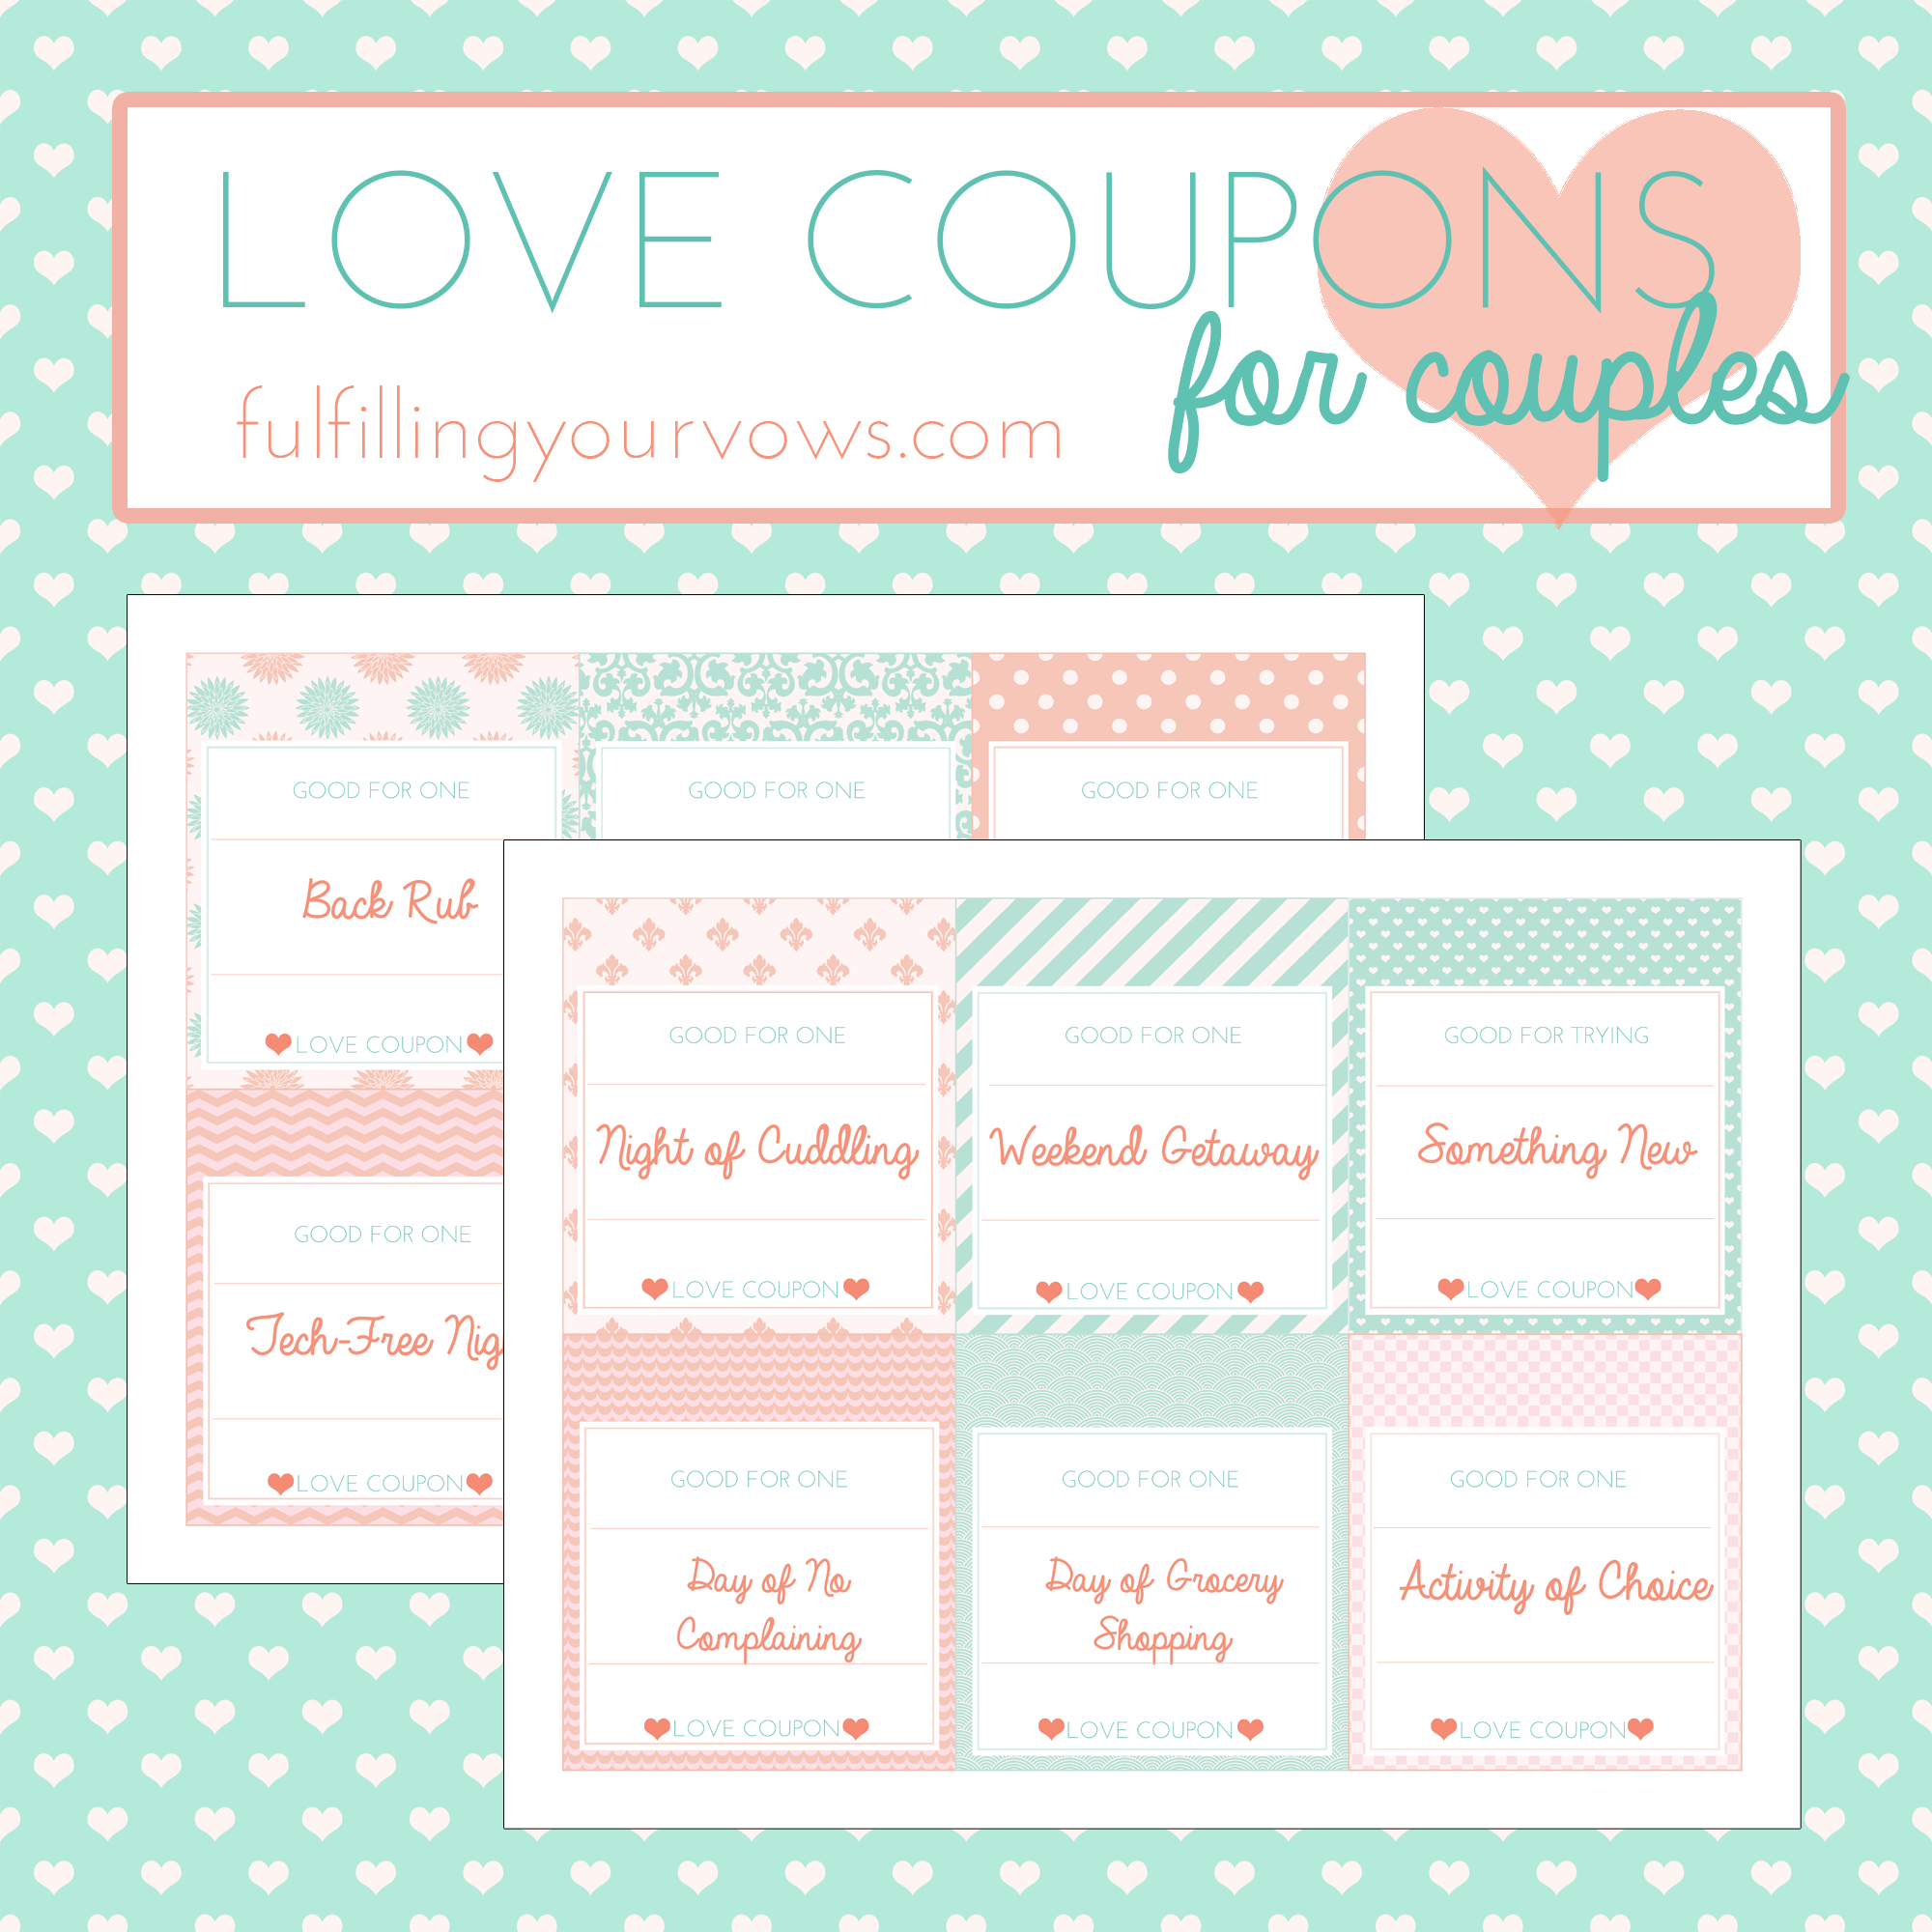 Free Printable Love Coupons For Couples - Fulfilling Your Vows - Free Printable Date Night Coupon